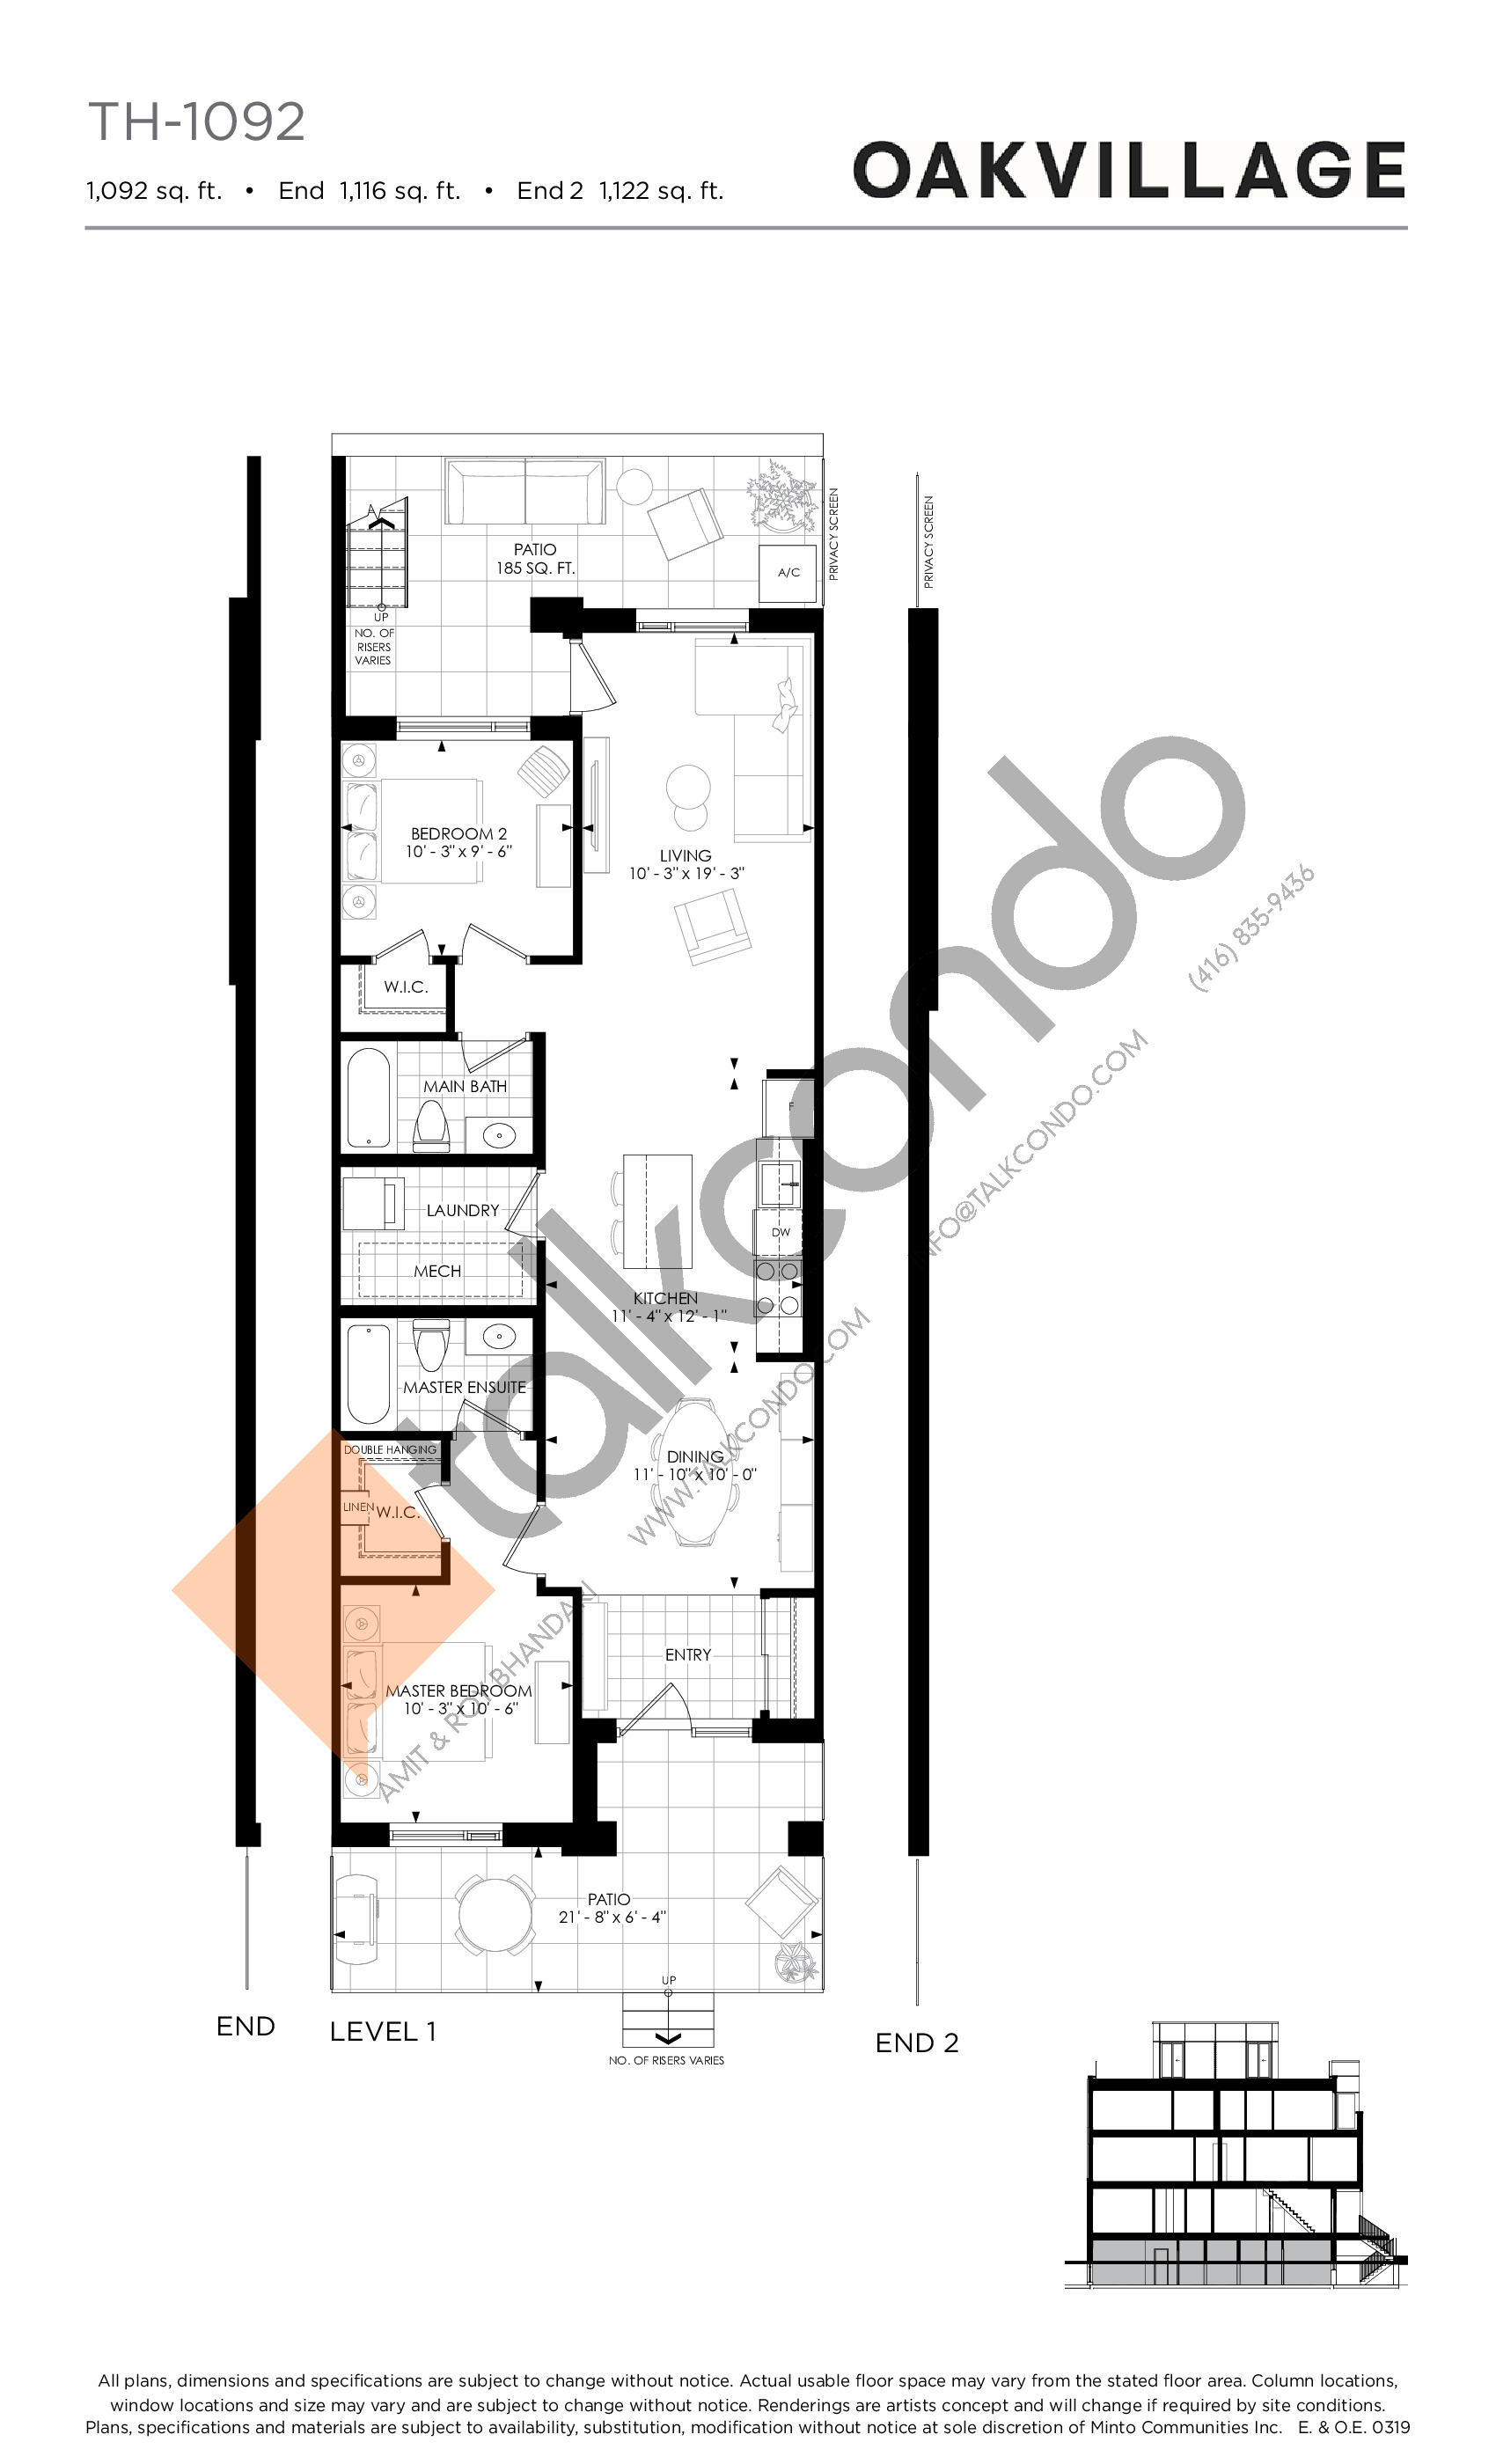 TH-1092 Floor Plan at Minto Oakvillage Condos 1 - 1092 sq.ft